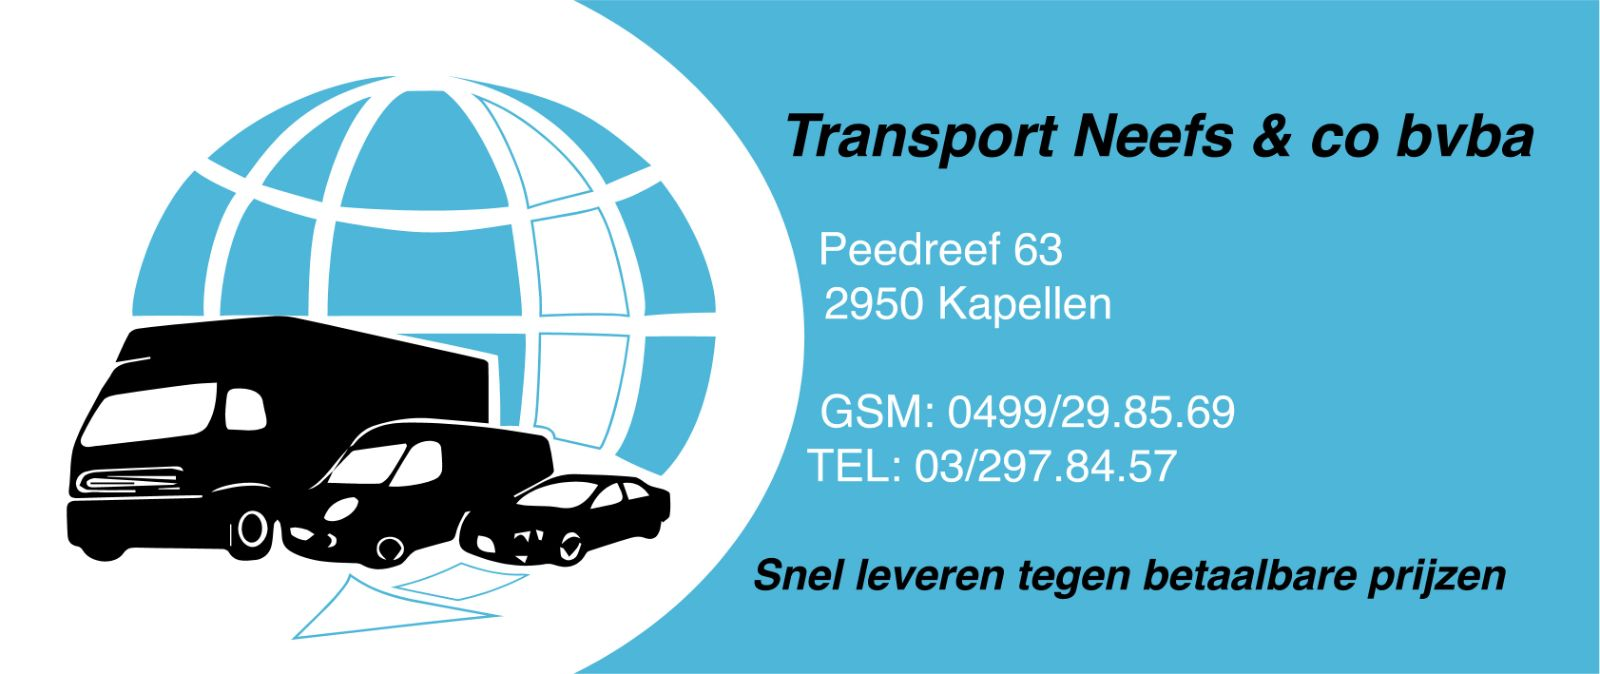 Transport Neefs & Co